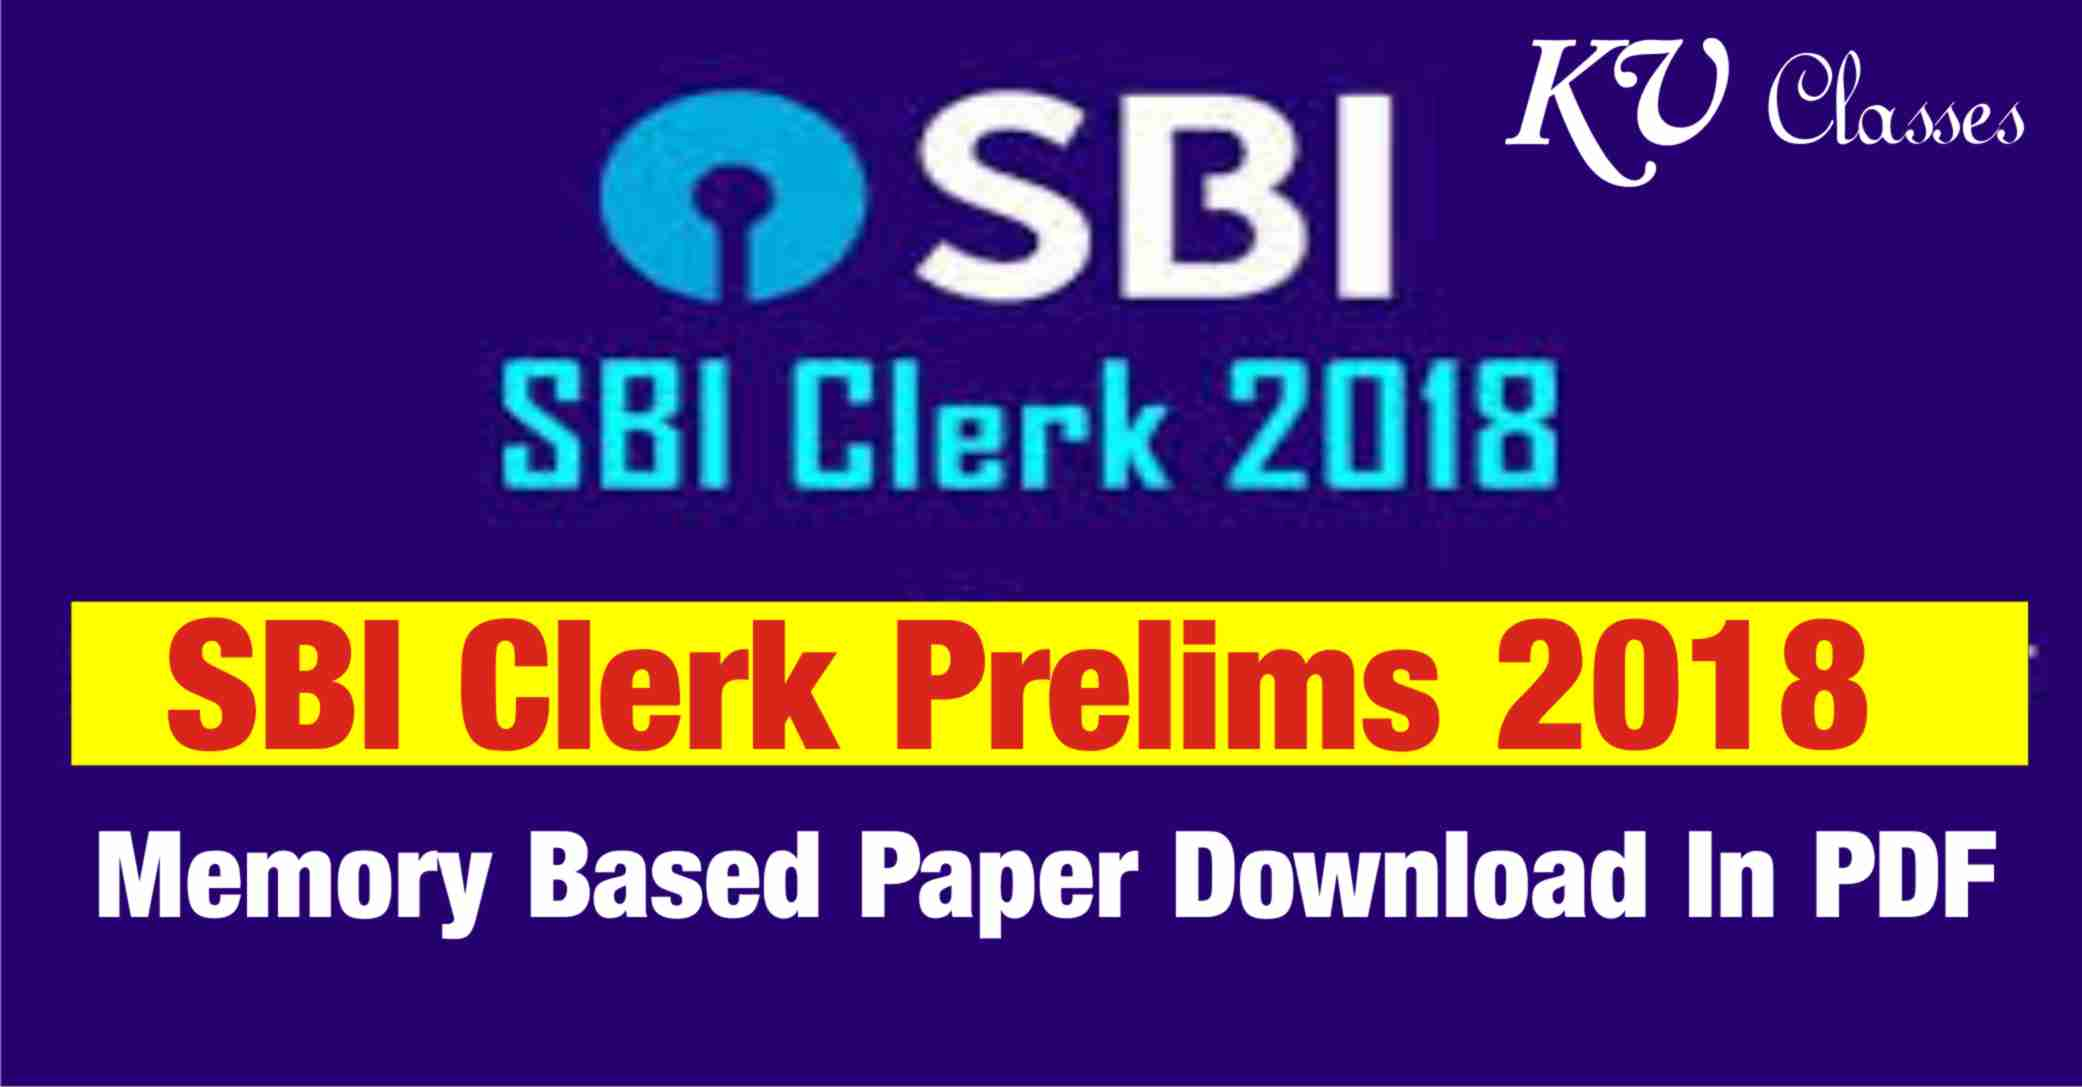 SBI Clerk Prelims 2018 Memory Based Paper Download In PDF